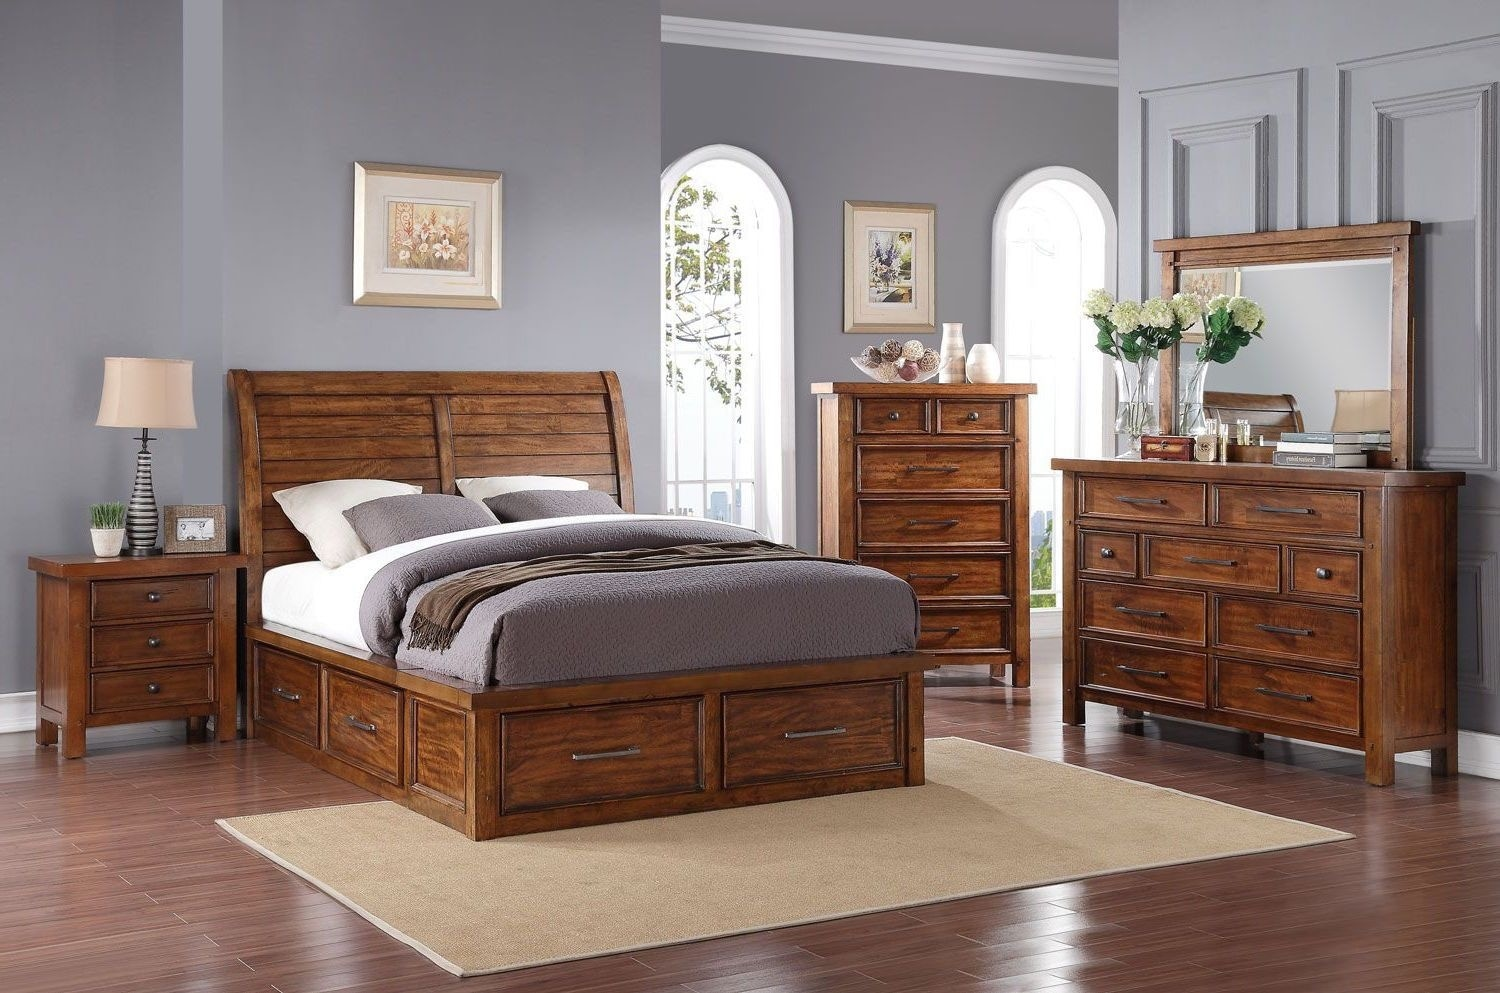 Sonoma 7-Piece King Storage Bedroom Package – Medium Brown